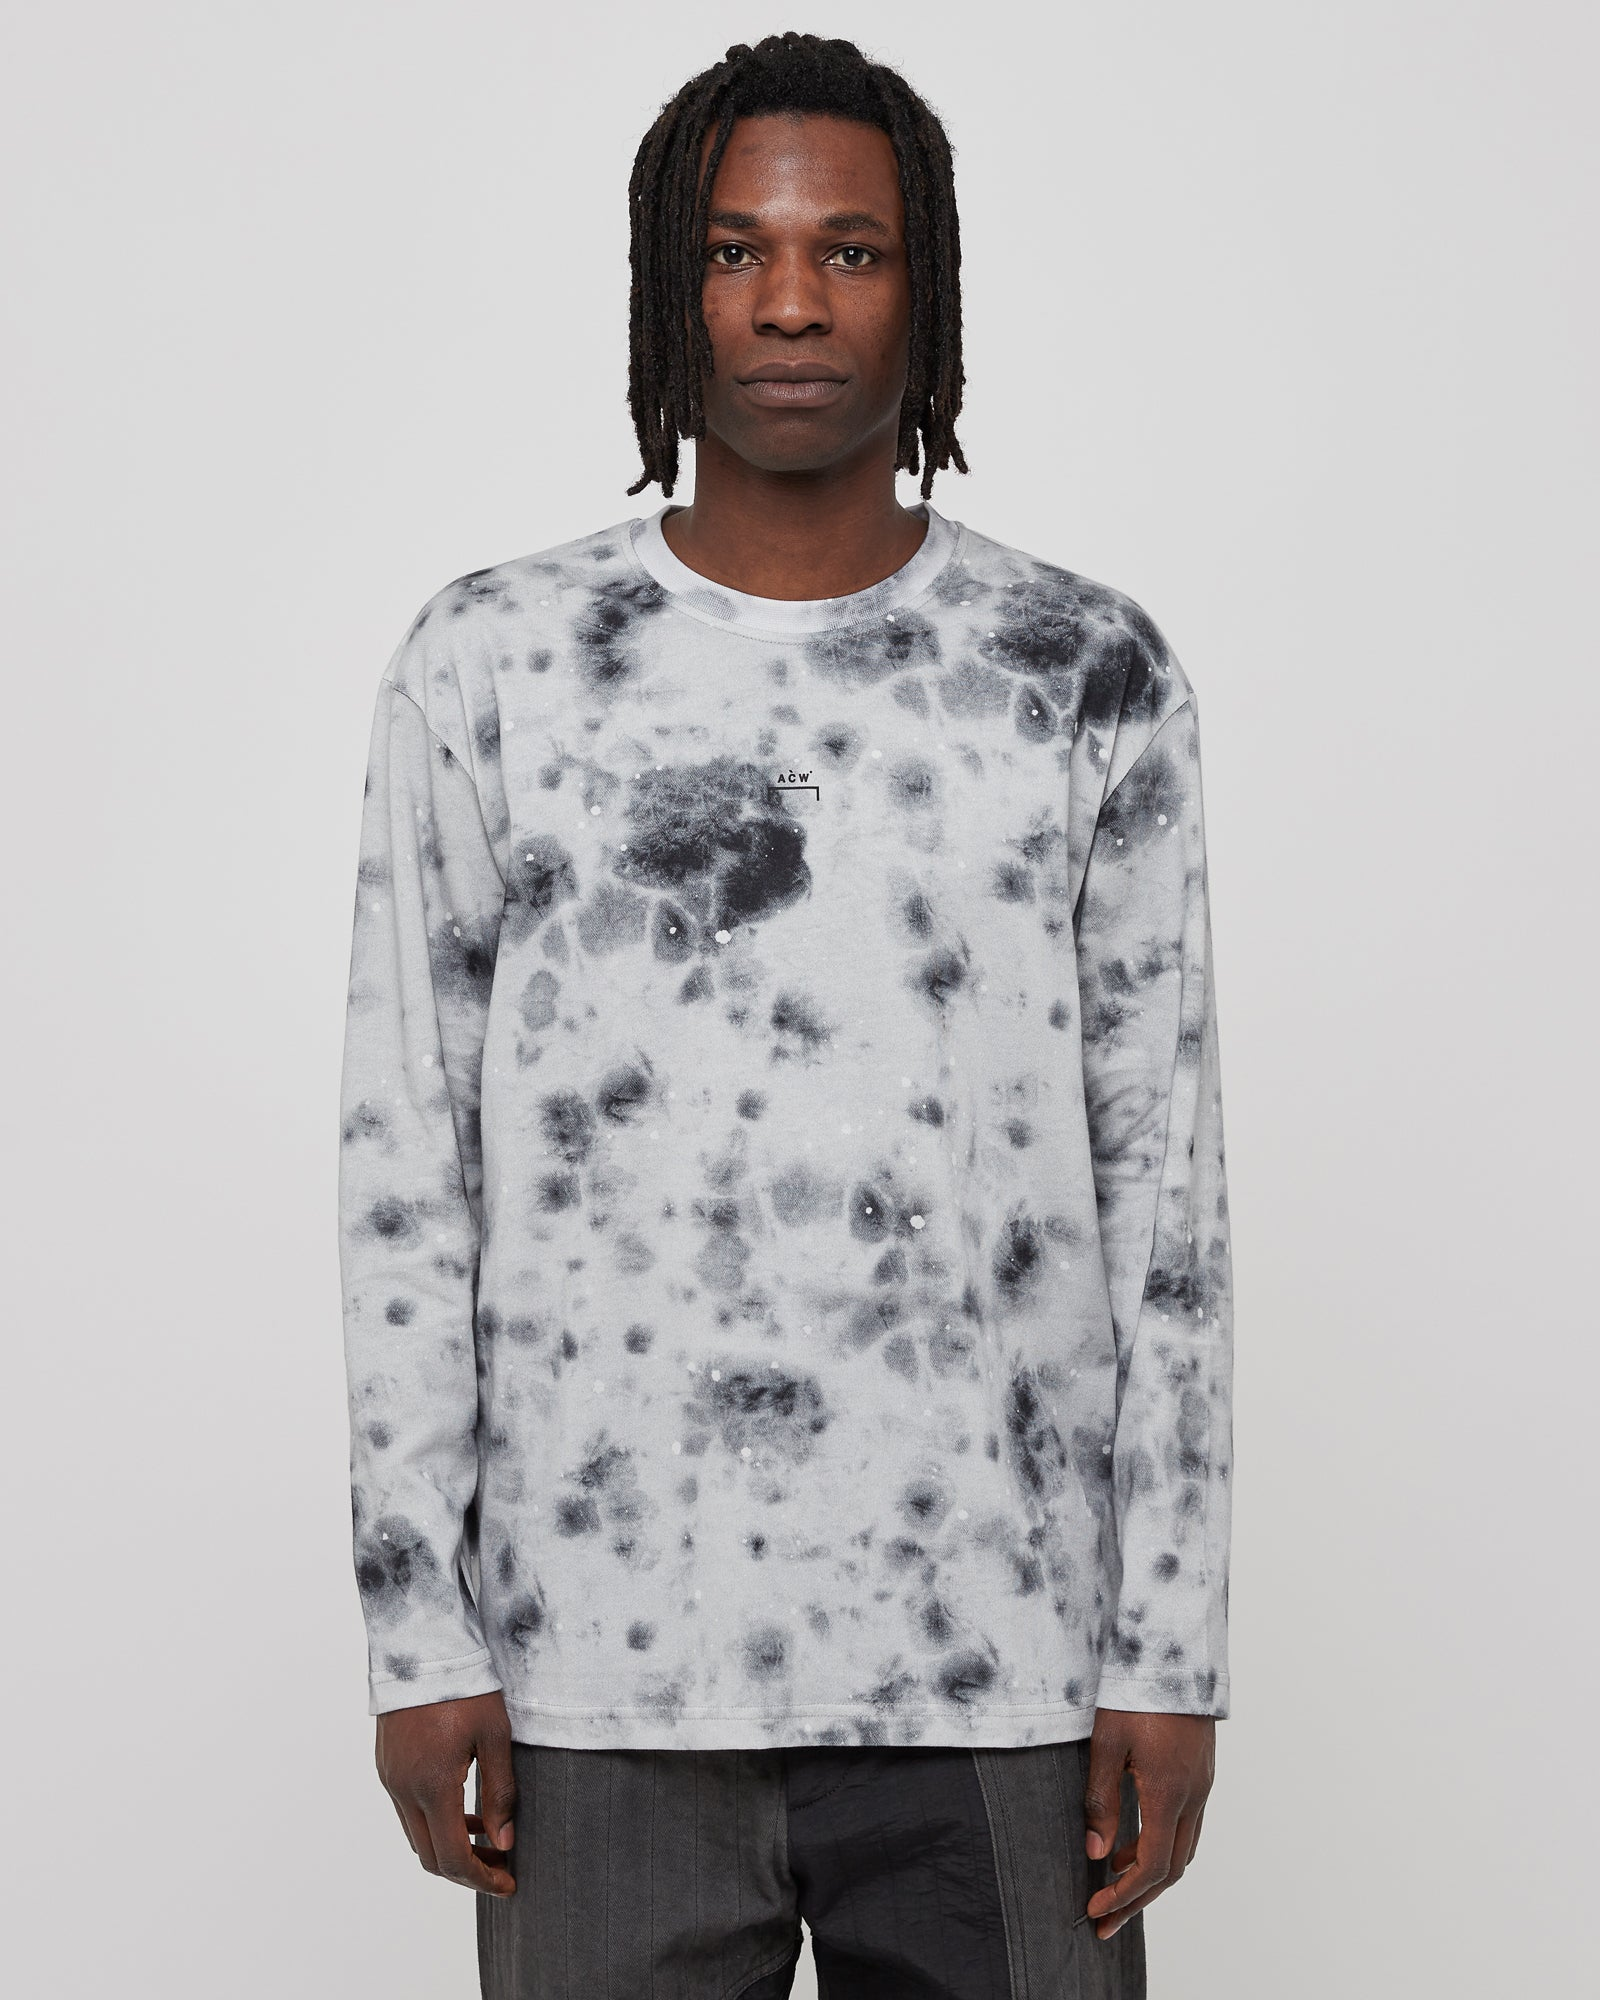 Diesel Red Tag L/S Top Stain T-Shirt in Gray